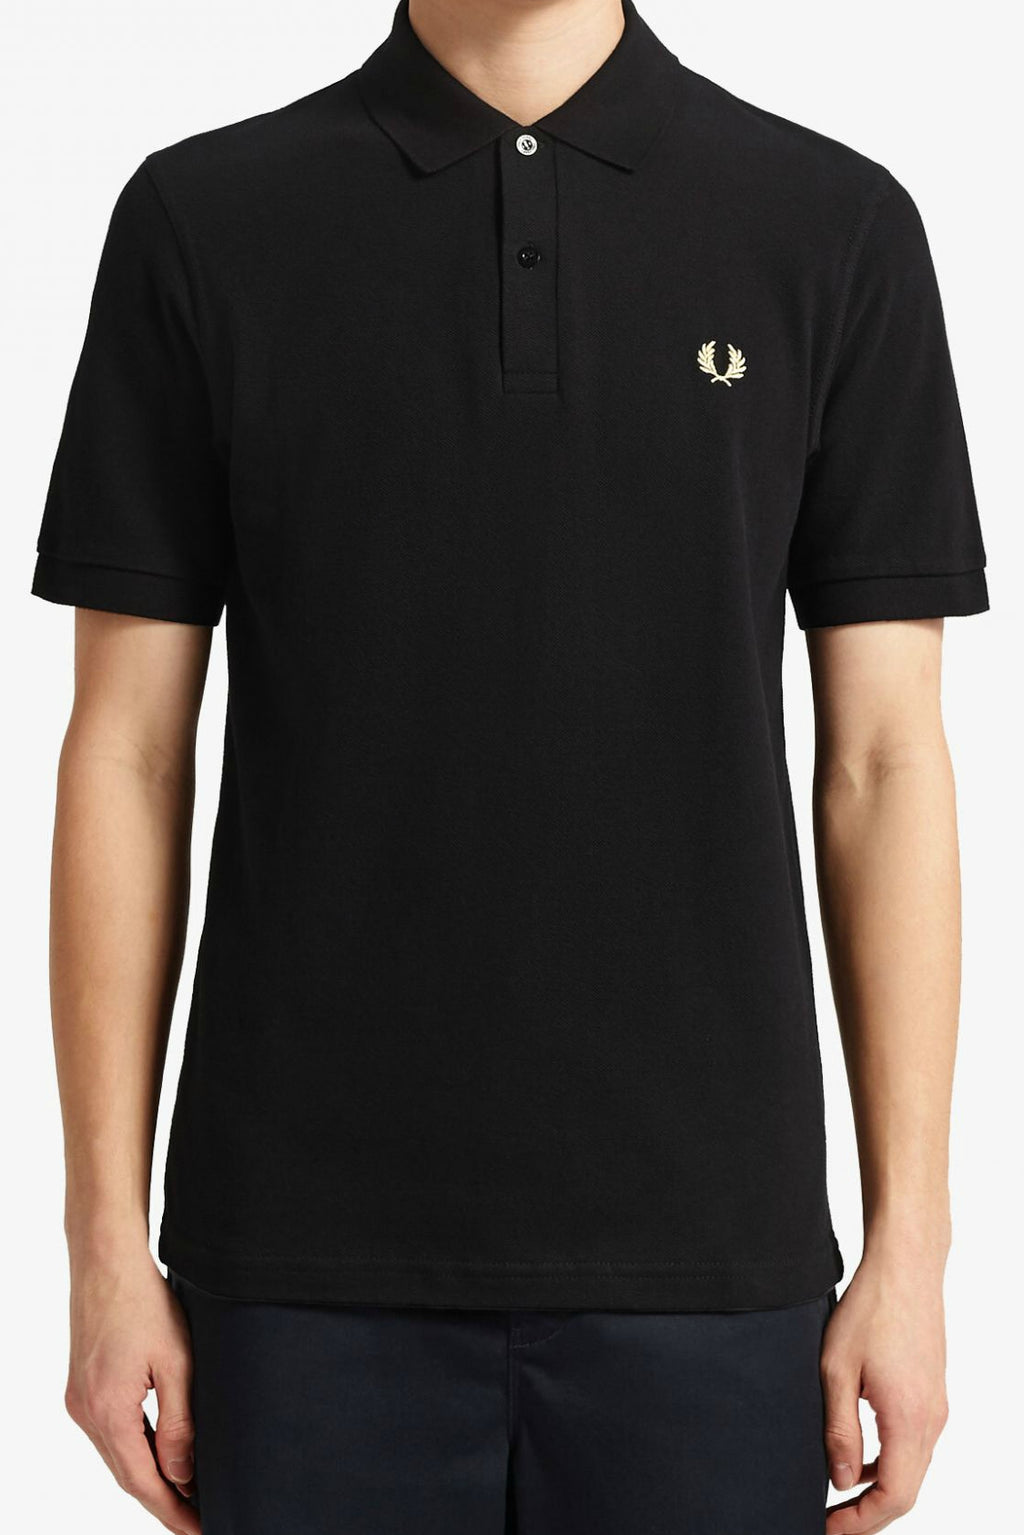 Fred Perry - Polo Shirt M3 in Black